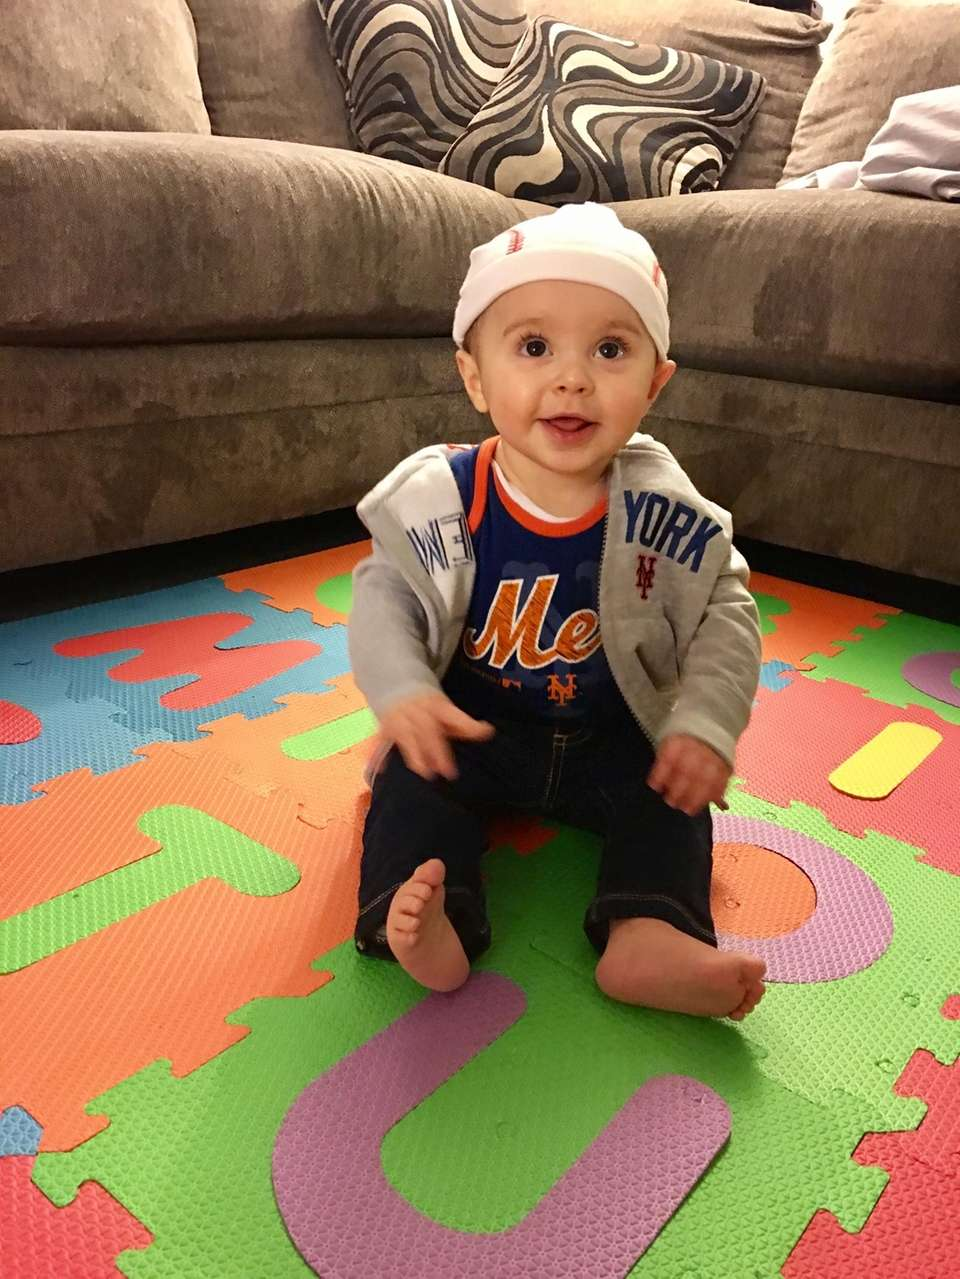 Luke's first Mets Game at 7 months old!